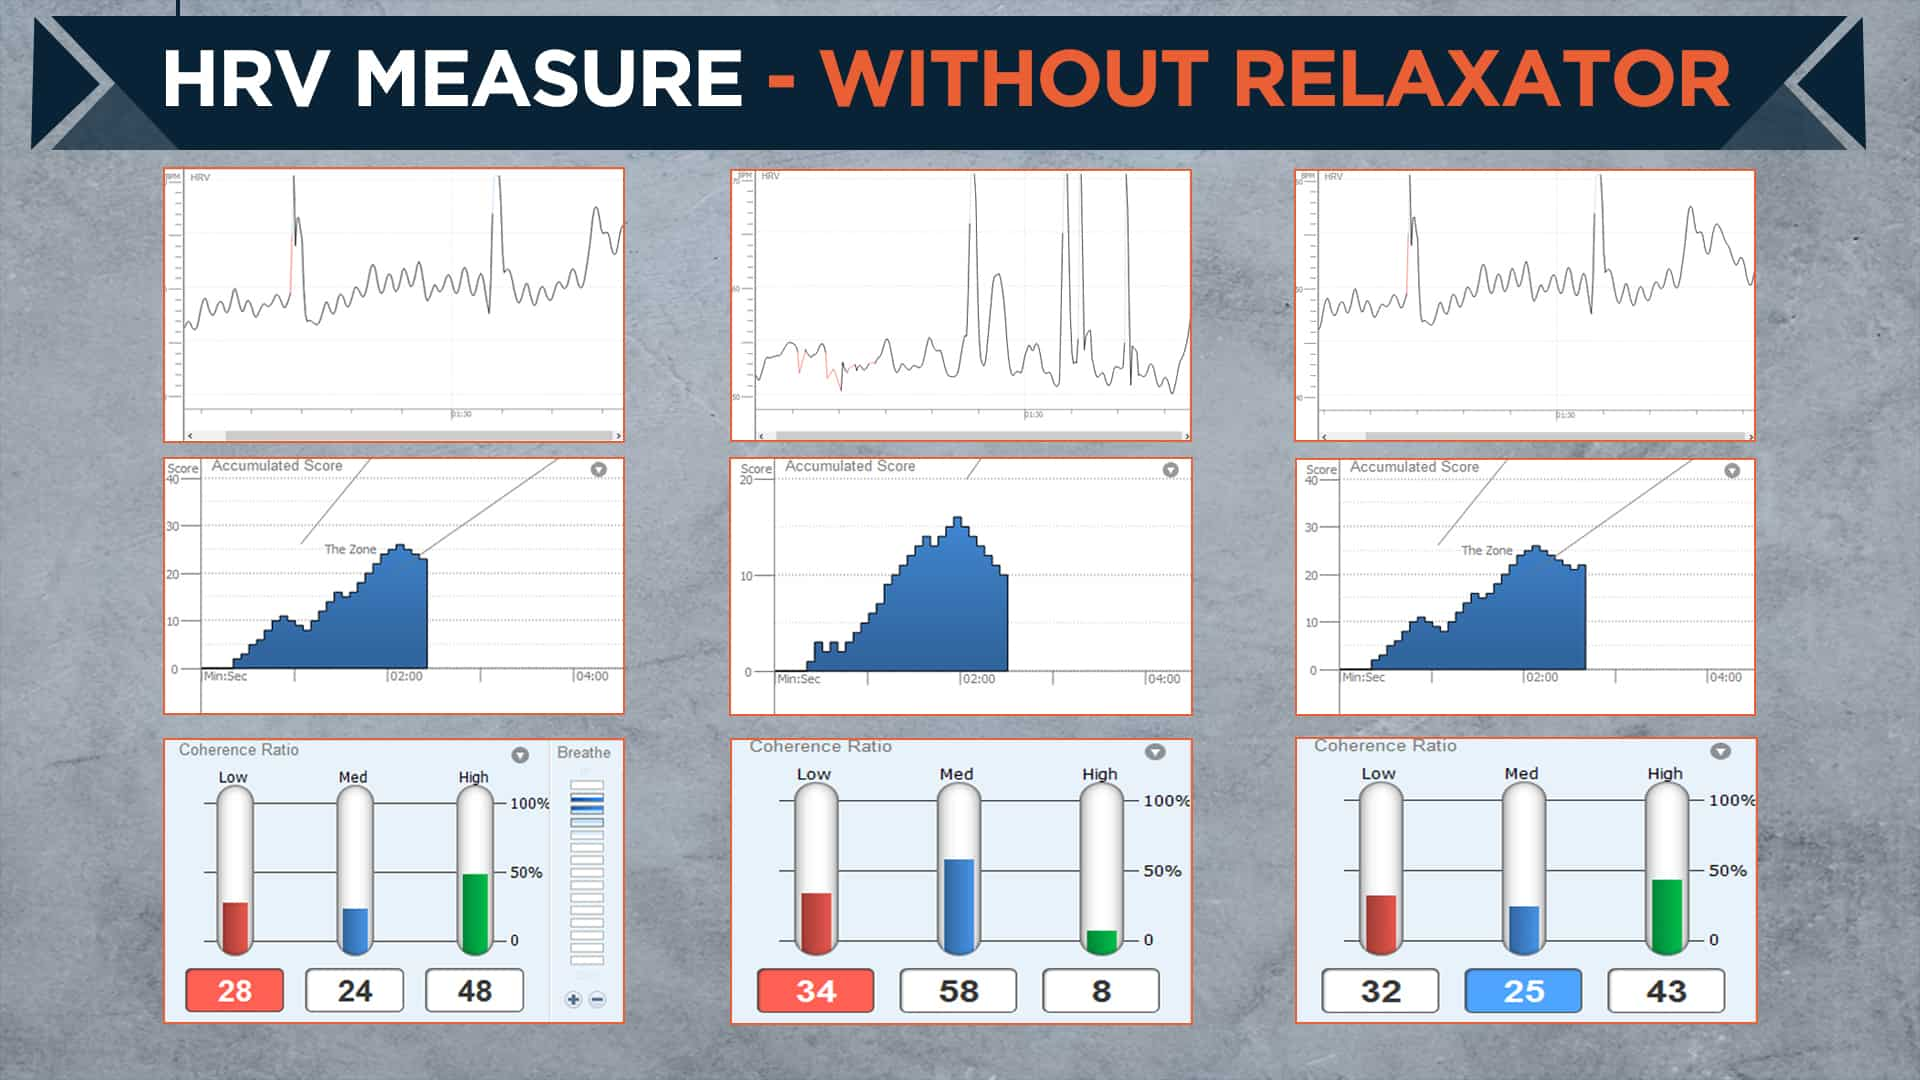 HRV Measure 1 without Relaxator